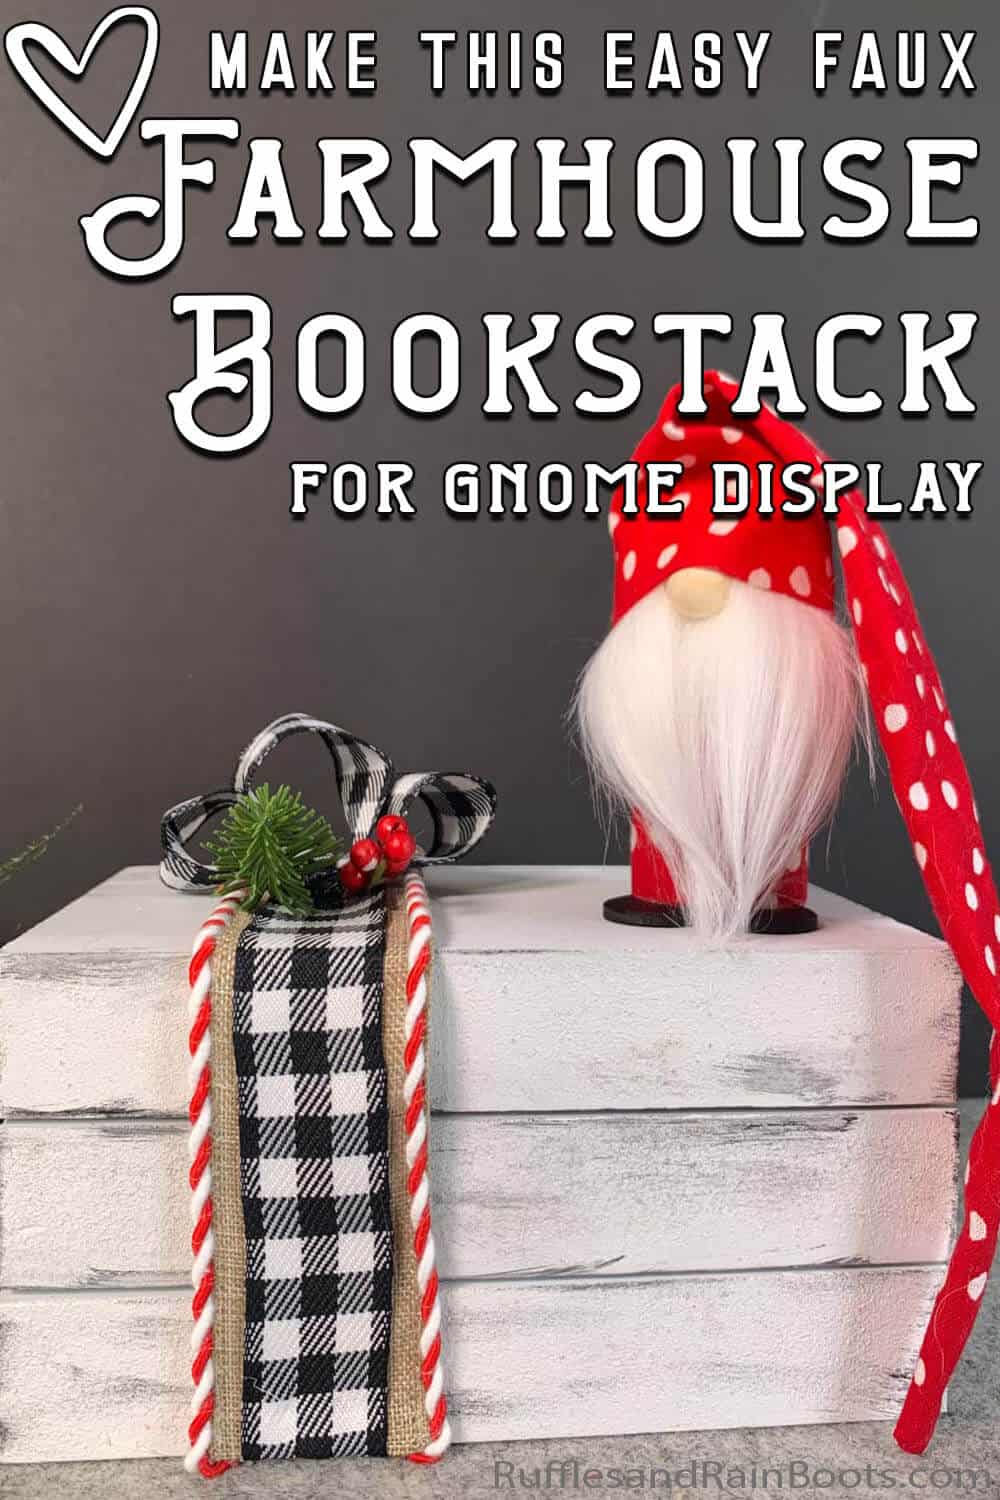 gnome shelf book stack craft with text which reads make this easy faux farmhouse bookstack for gnome display